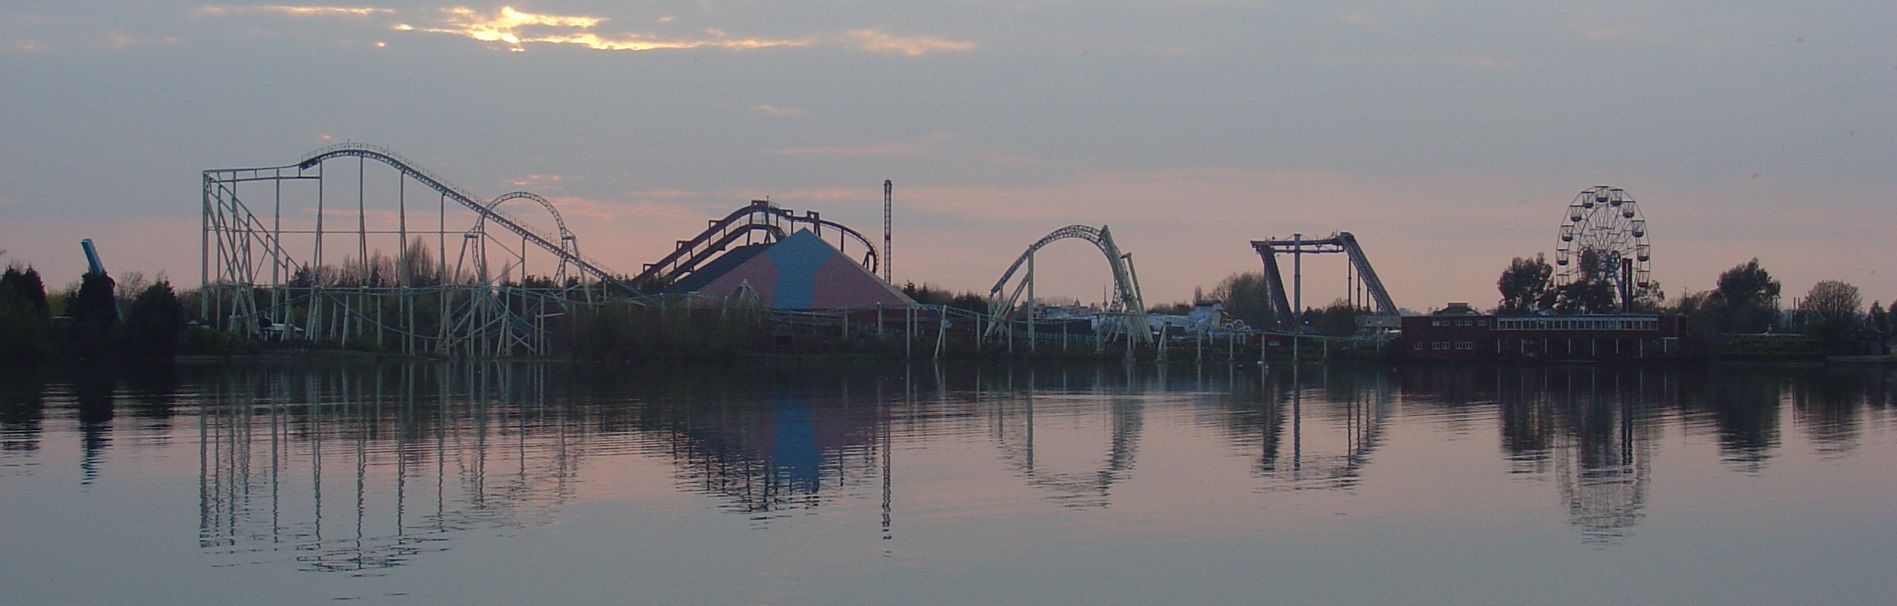 Thorpe_park_skyline_header